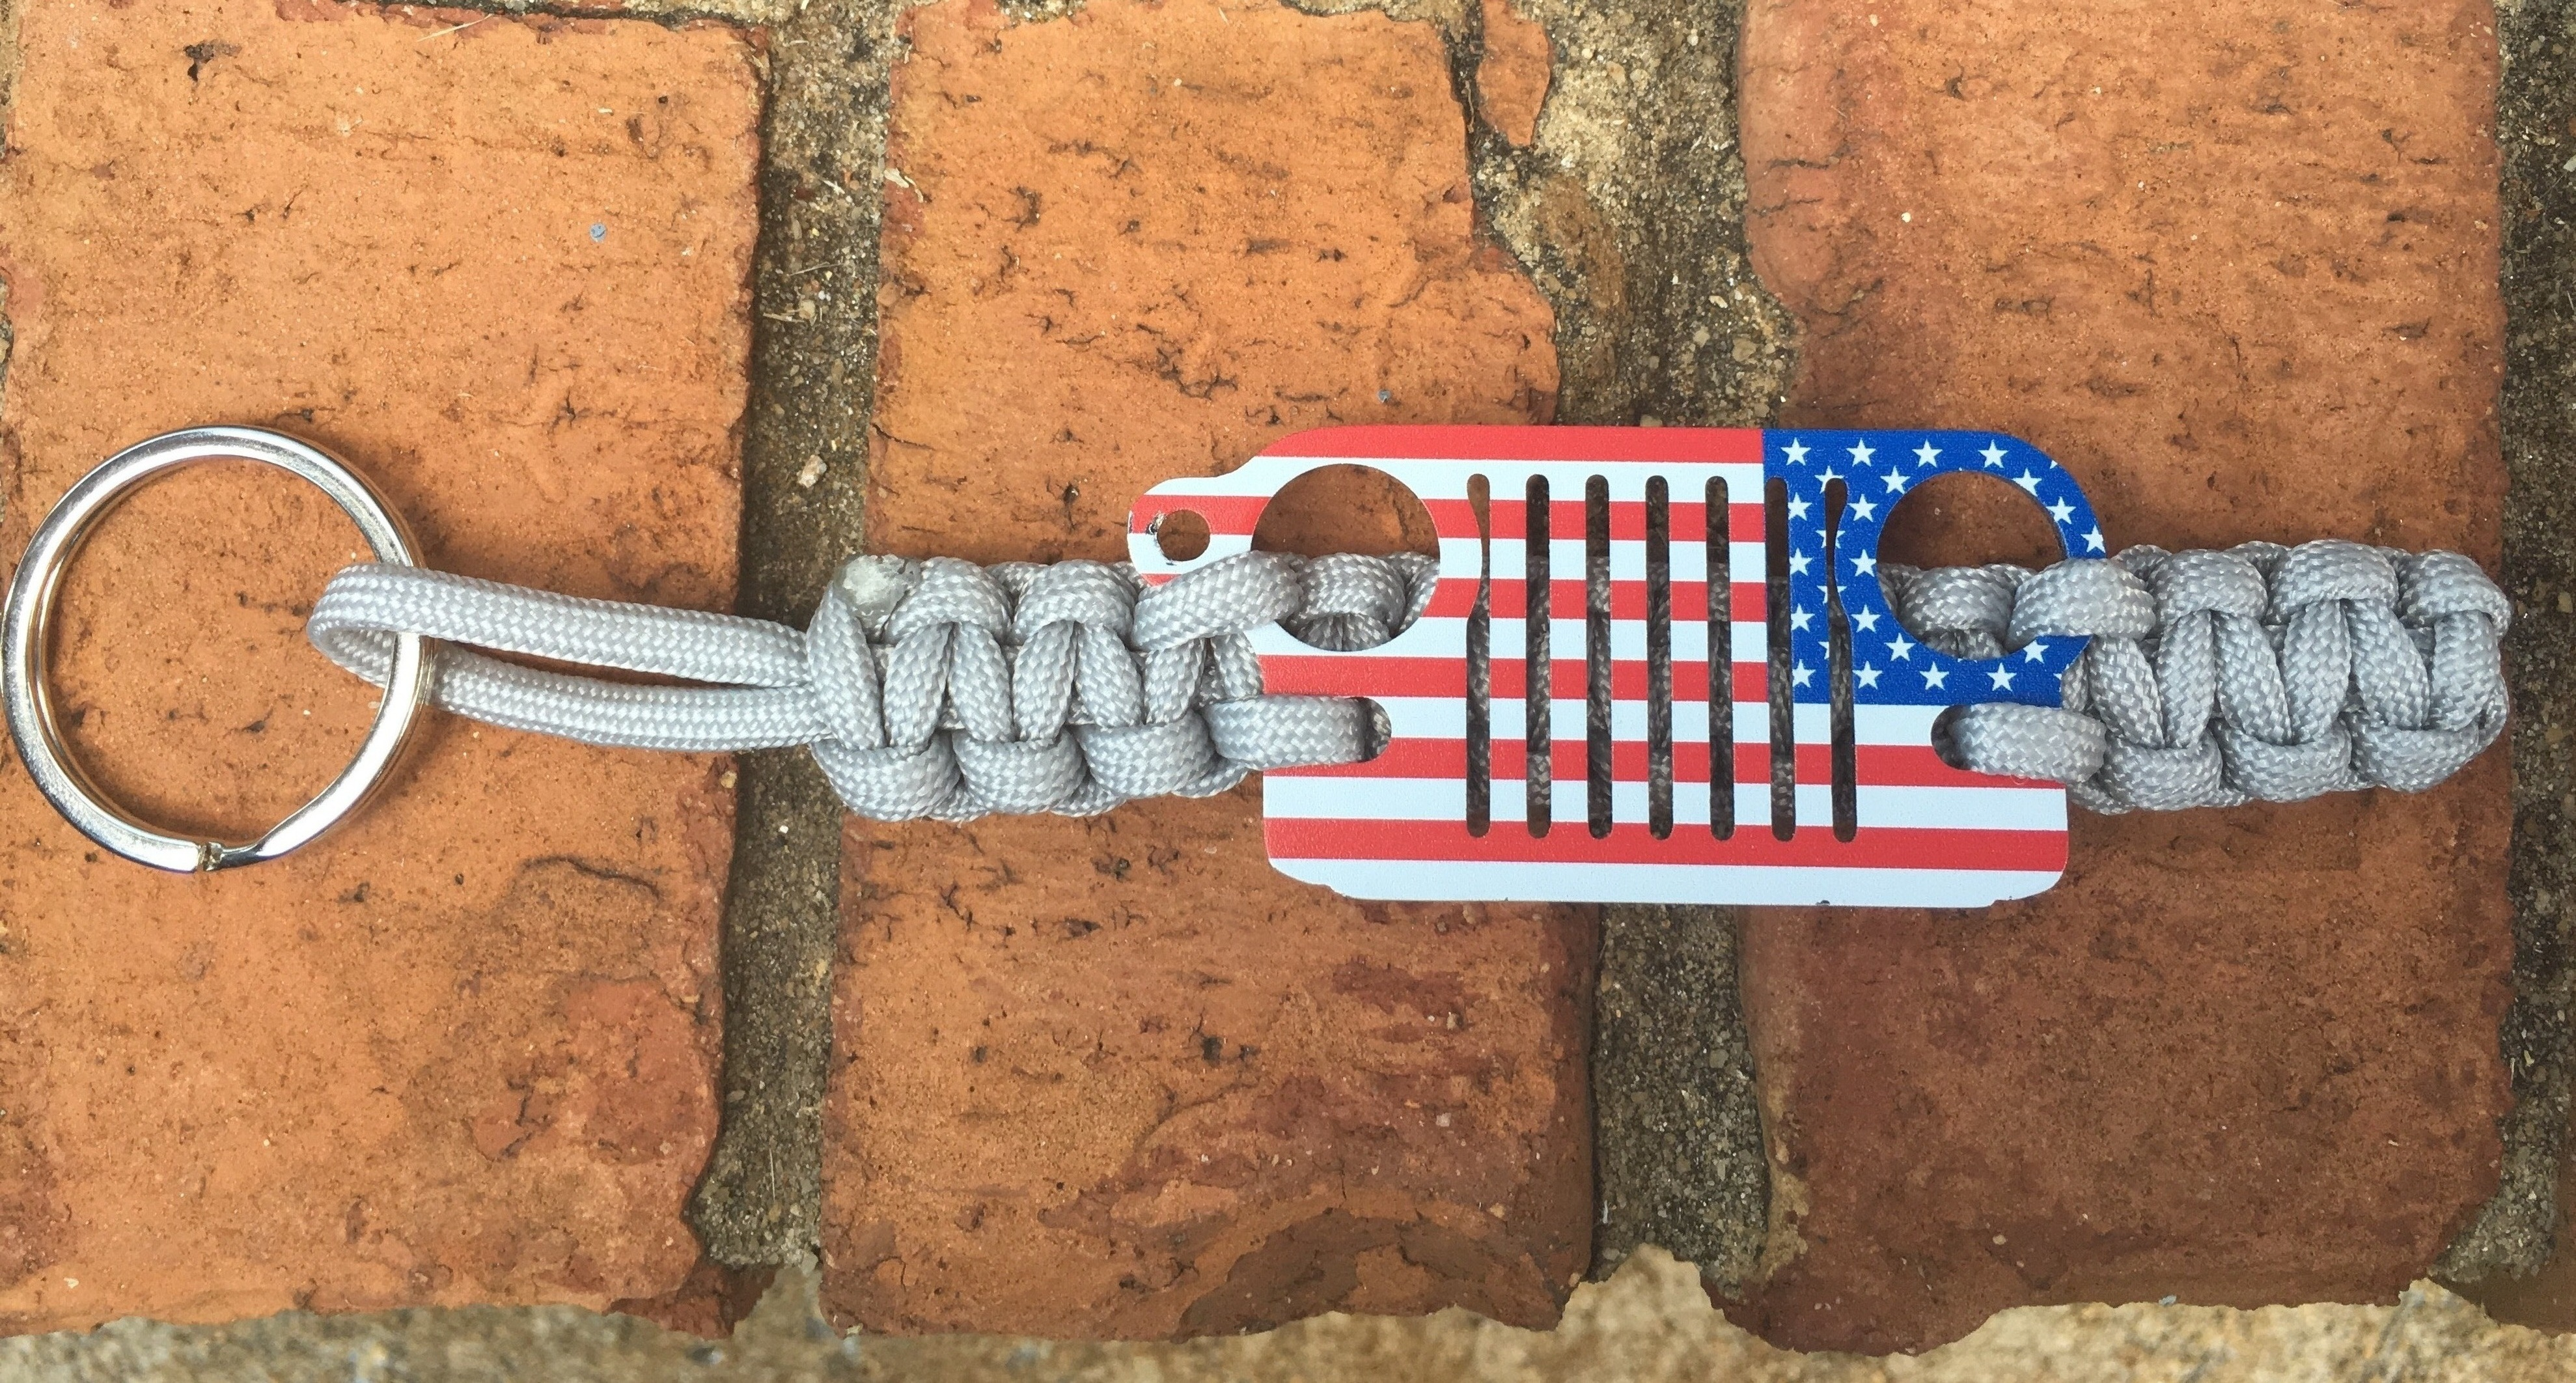 Jeep Grille Paracord Keychain in Silver with Flag Grille